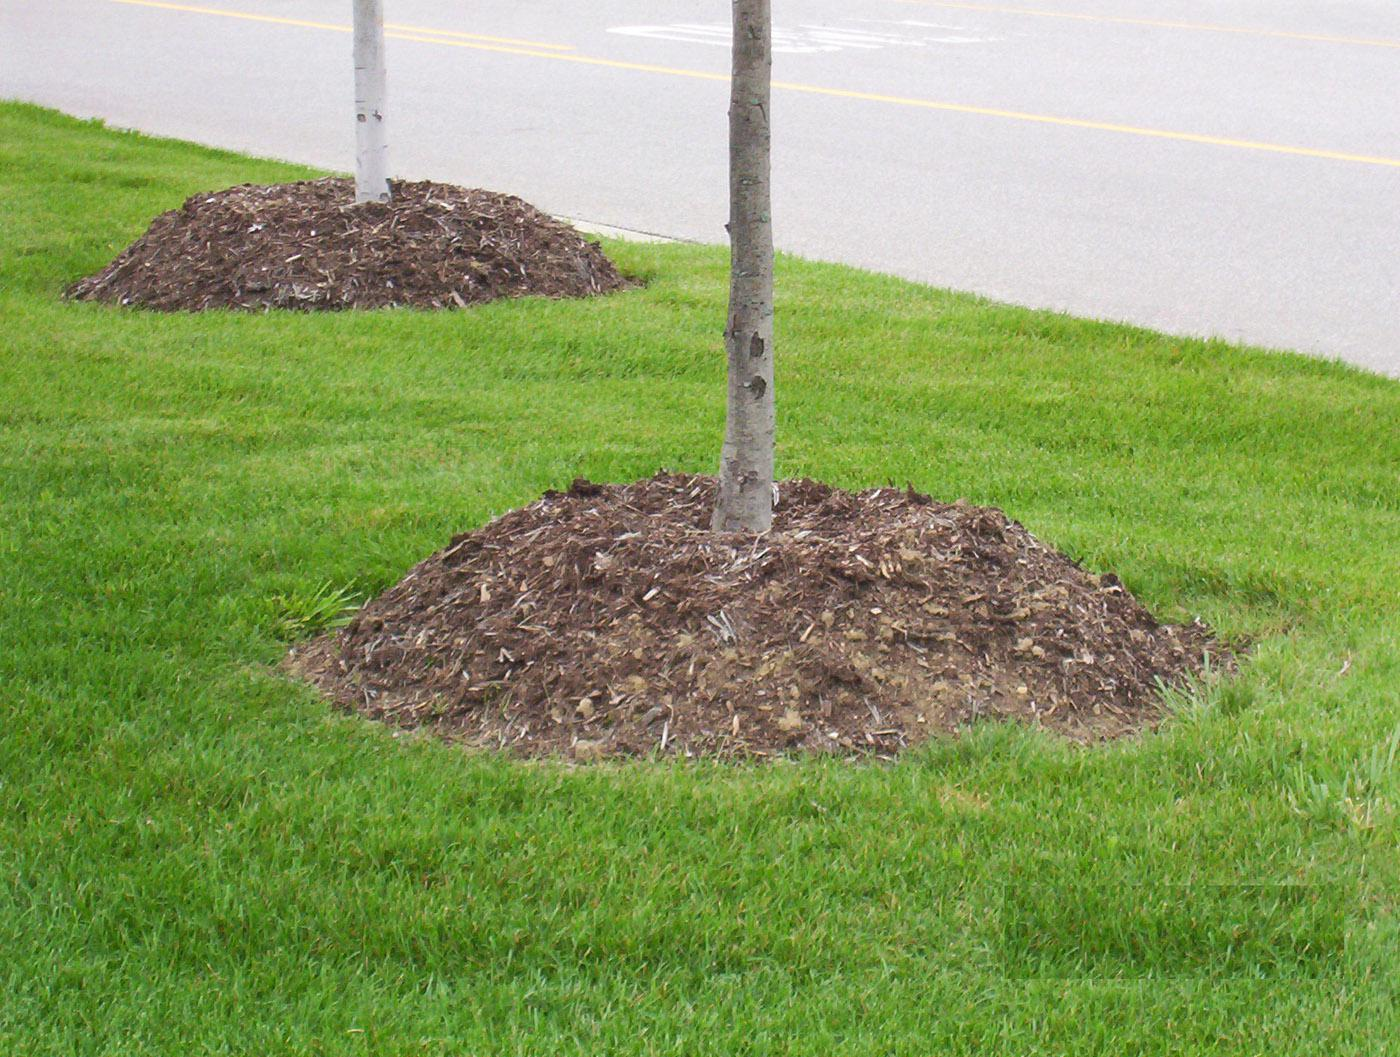 Typical mulch volcanoes have been formed high around the base and trunk of these trees. This thick layer of mulch is bad for the trees and can cause bark decay, root circling, and other problems. (Photo by Gary Bachman)